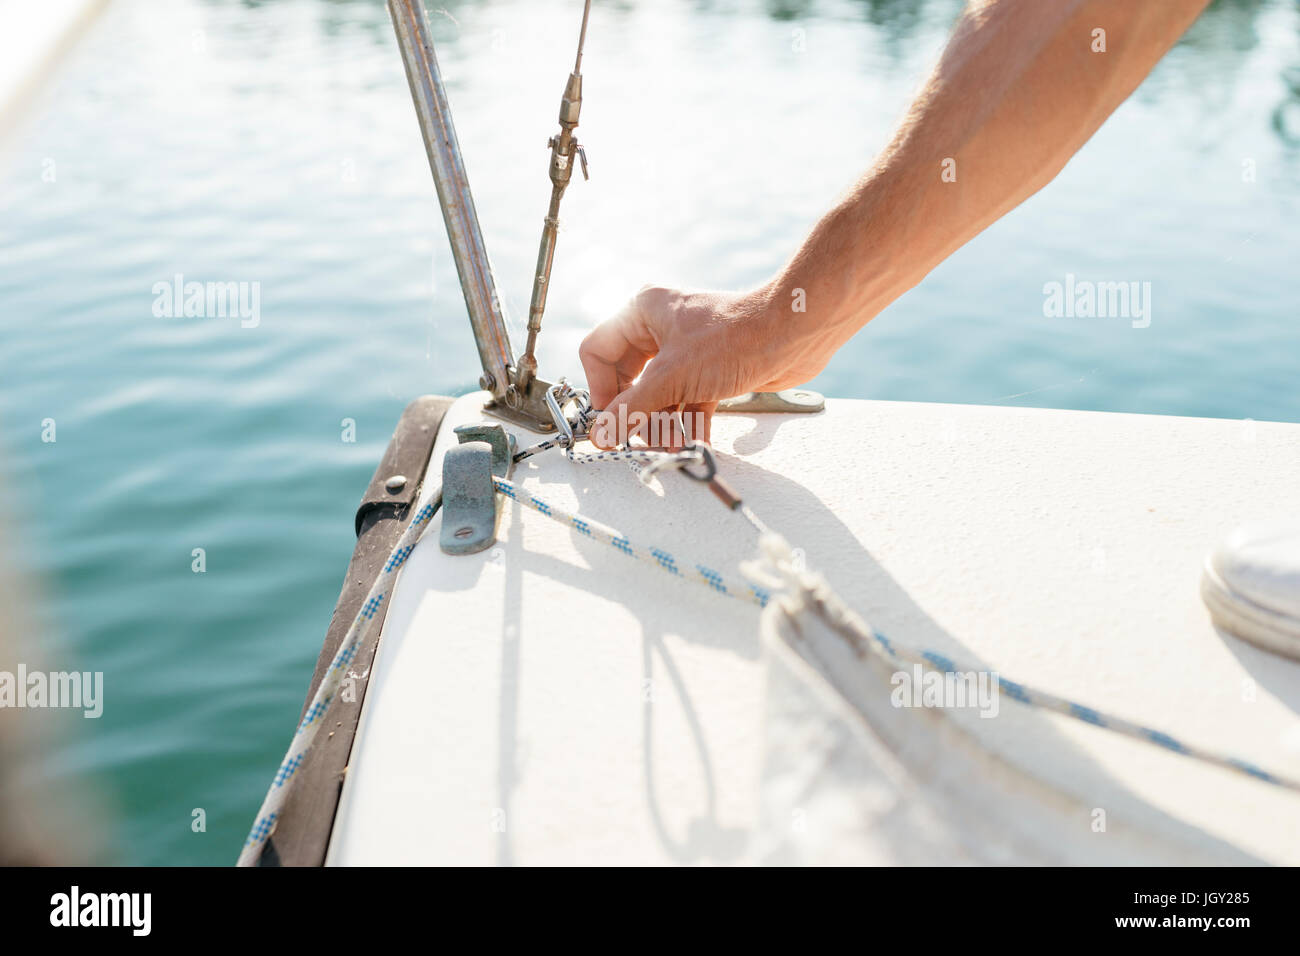 Man on sailing boat, fastening sail, close-up - Stock Image